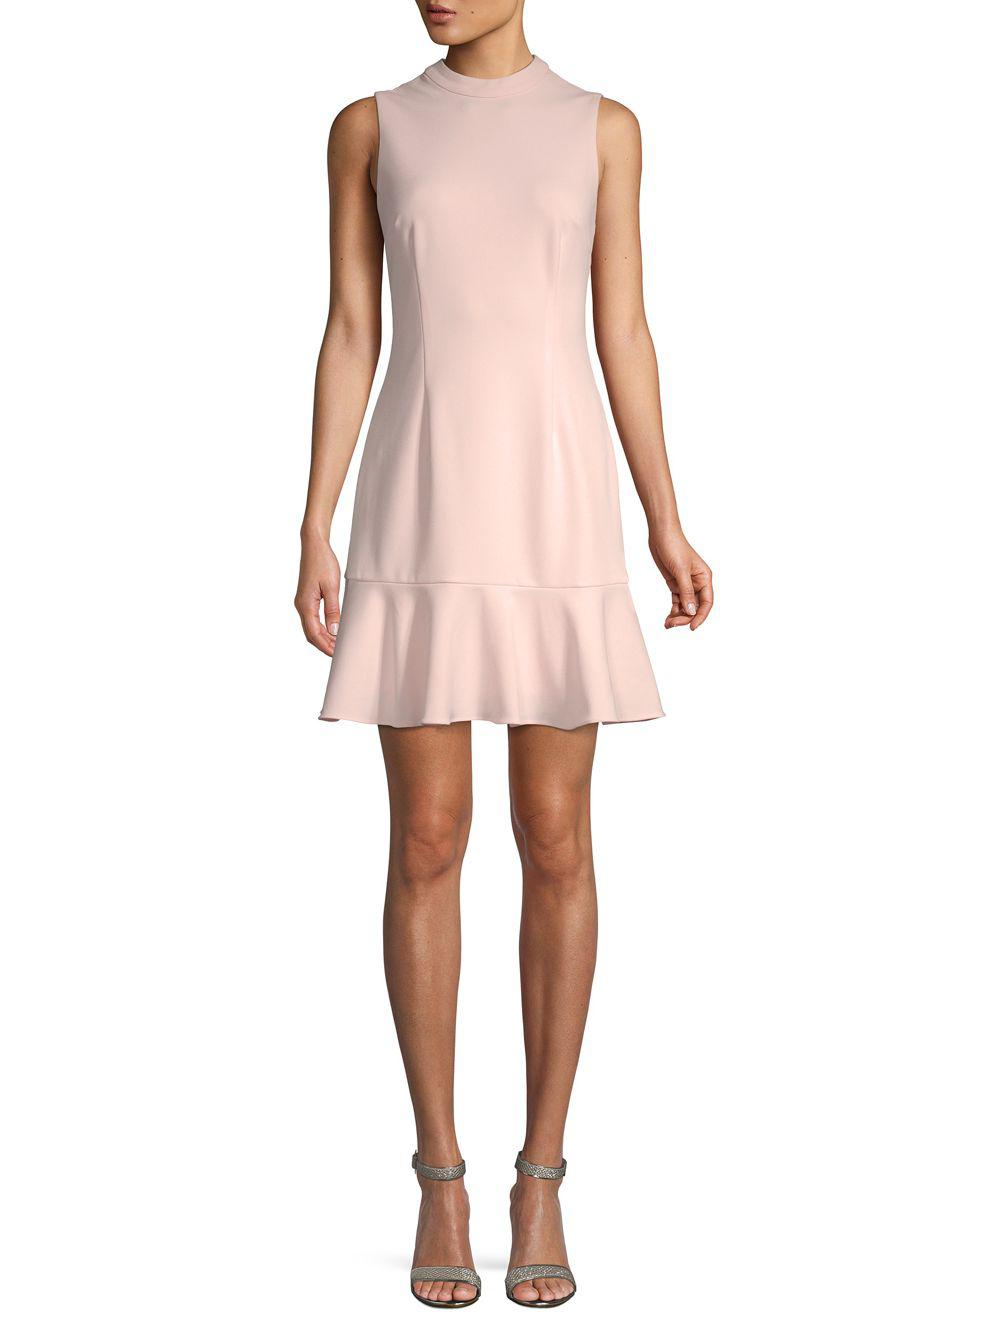 18ae72eafbad Saks Fifth Avenue Black Classic Crepe Fit-&-flare Dress in Pink - Lyst